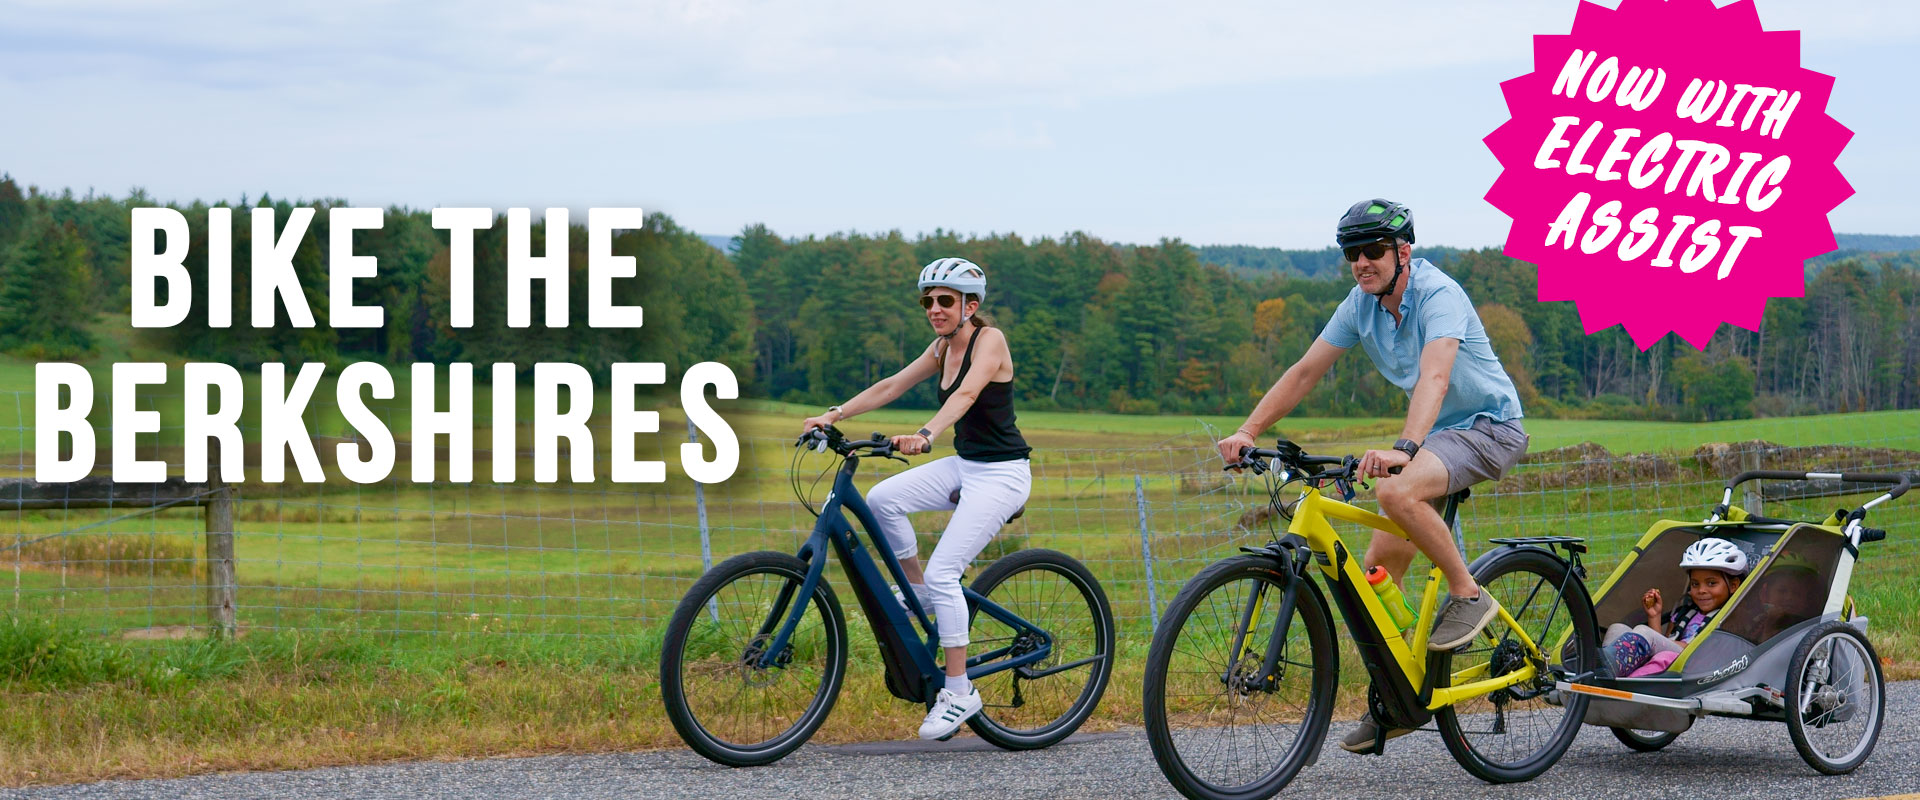 e-bike the berkshires | CLICK FOR OUR E-BIKES